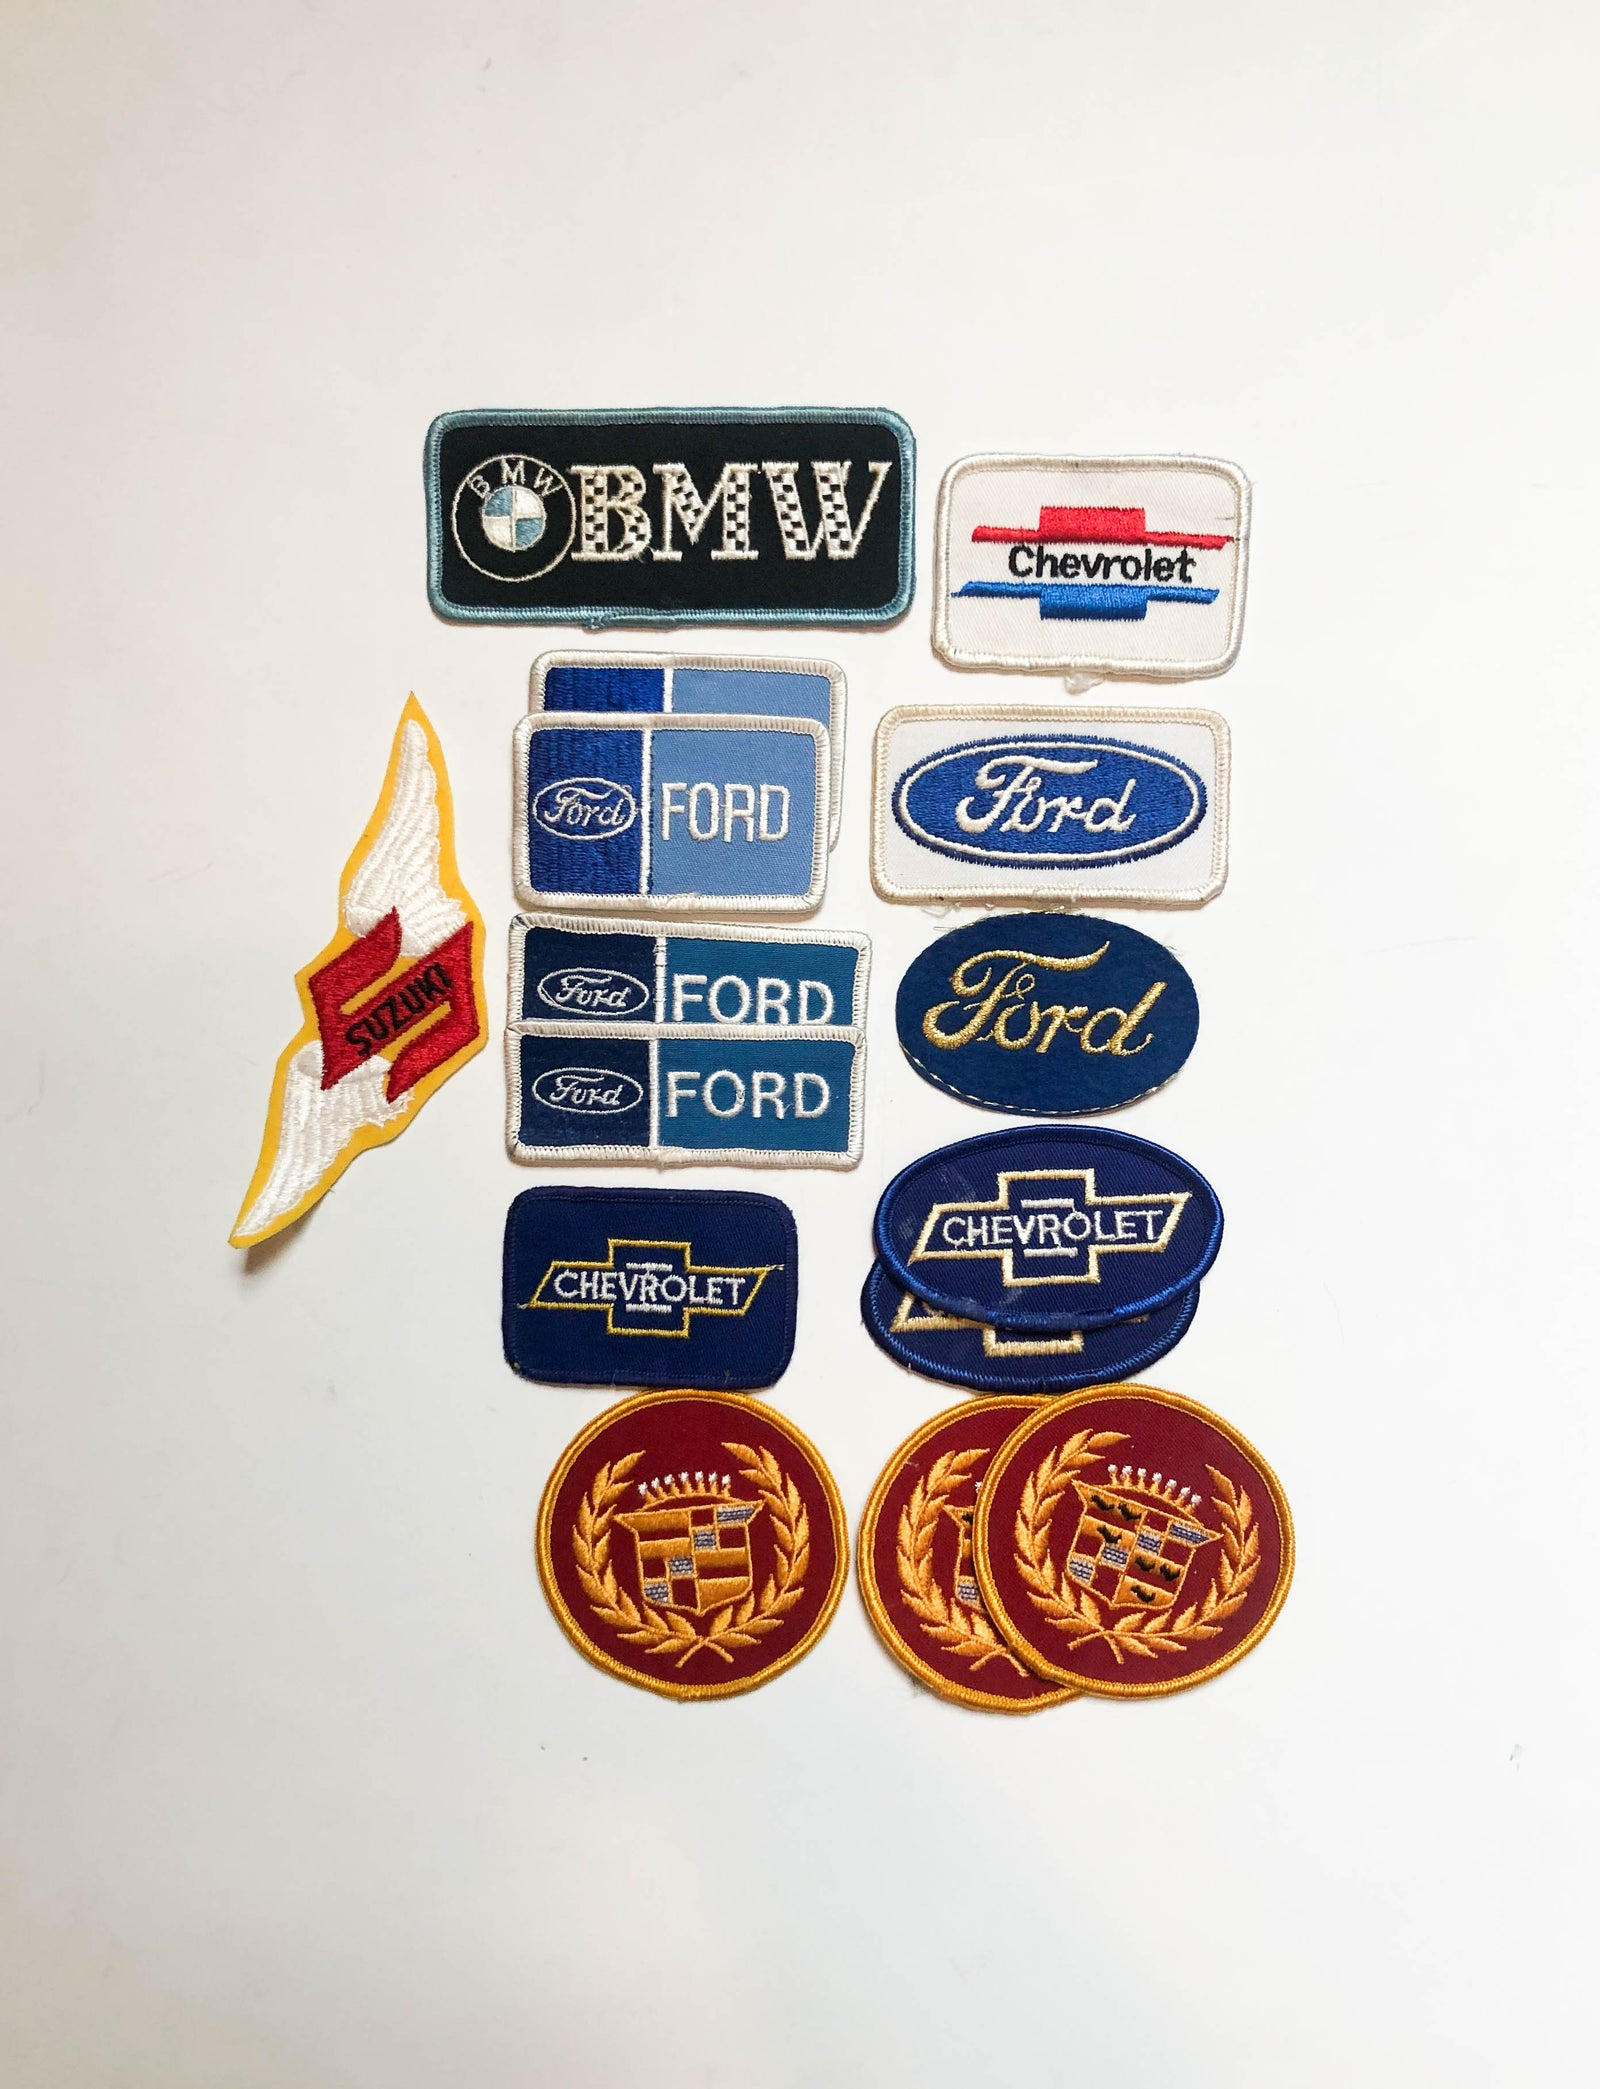 Vintage Car Patches Ford Chevrolet Chevy BMW Cadillac Suzuki